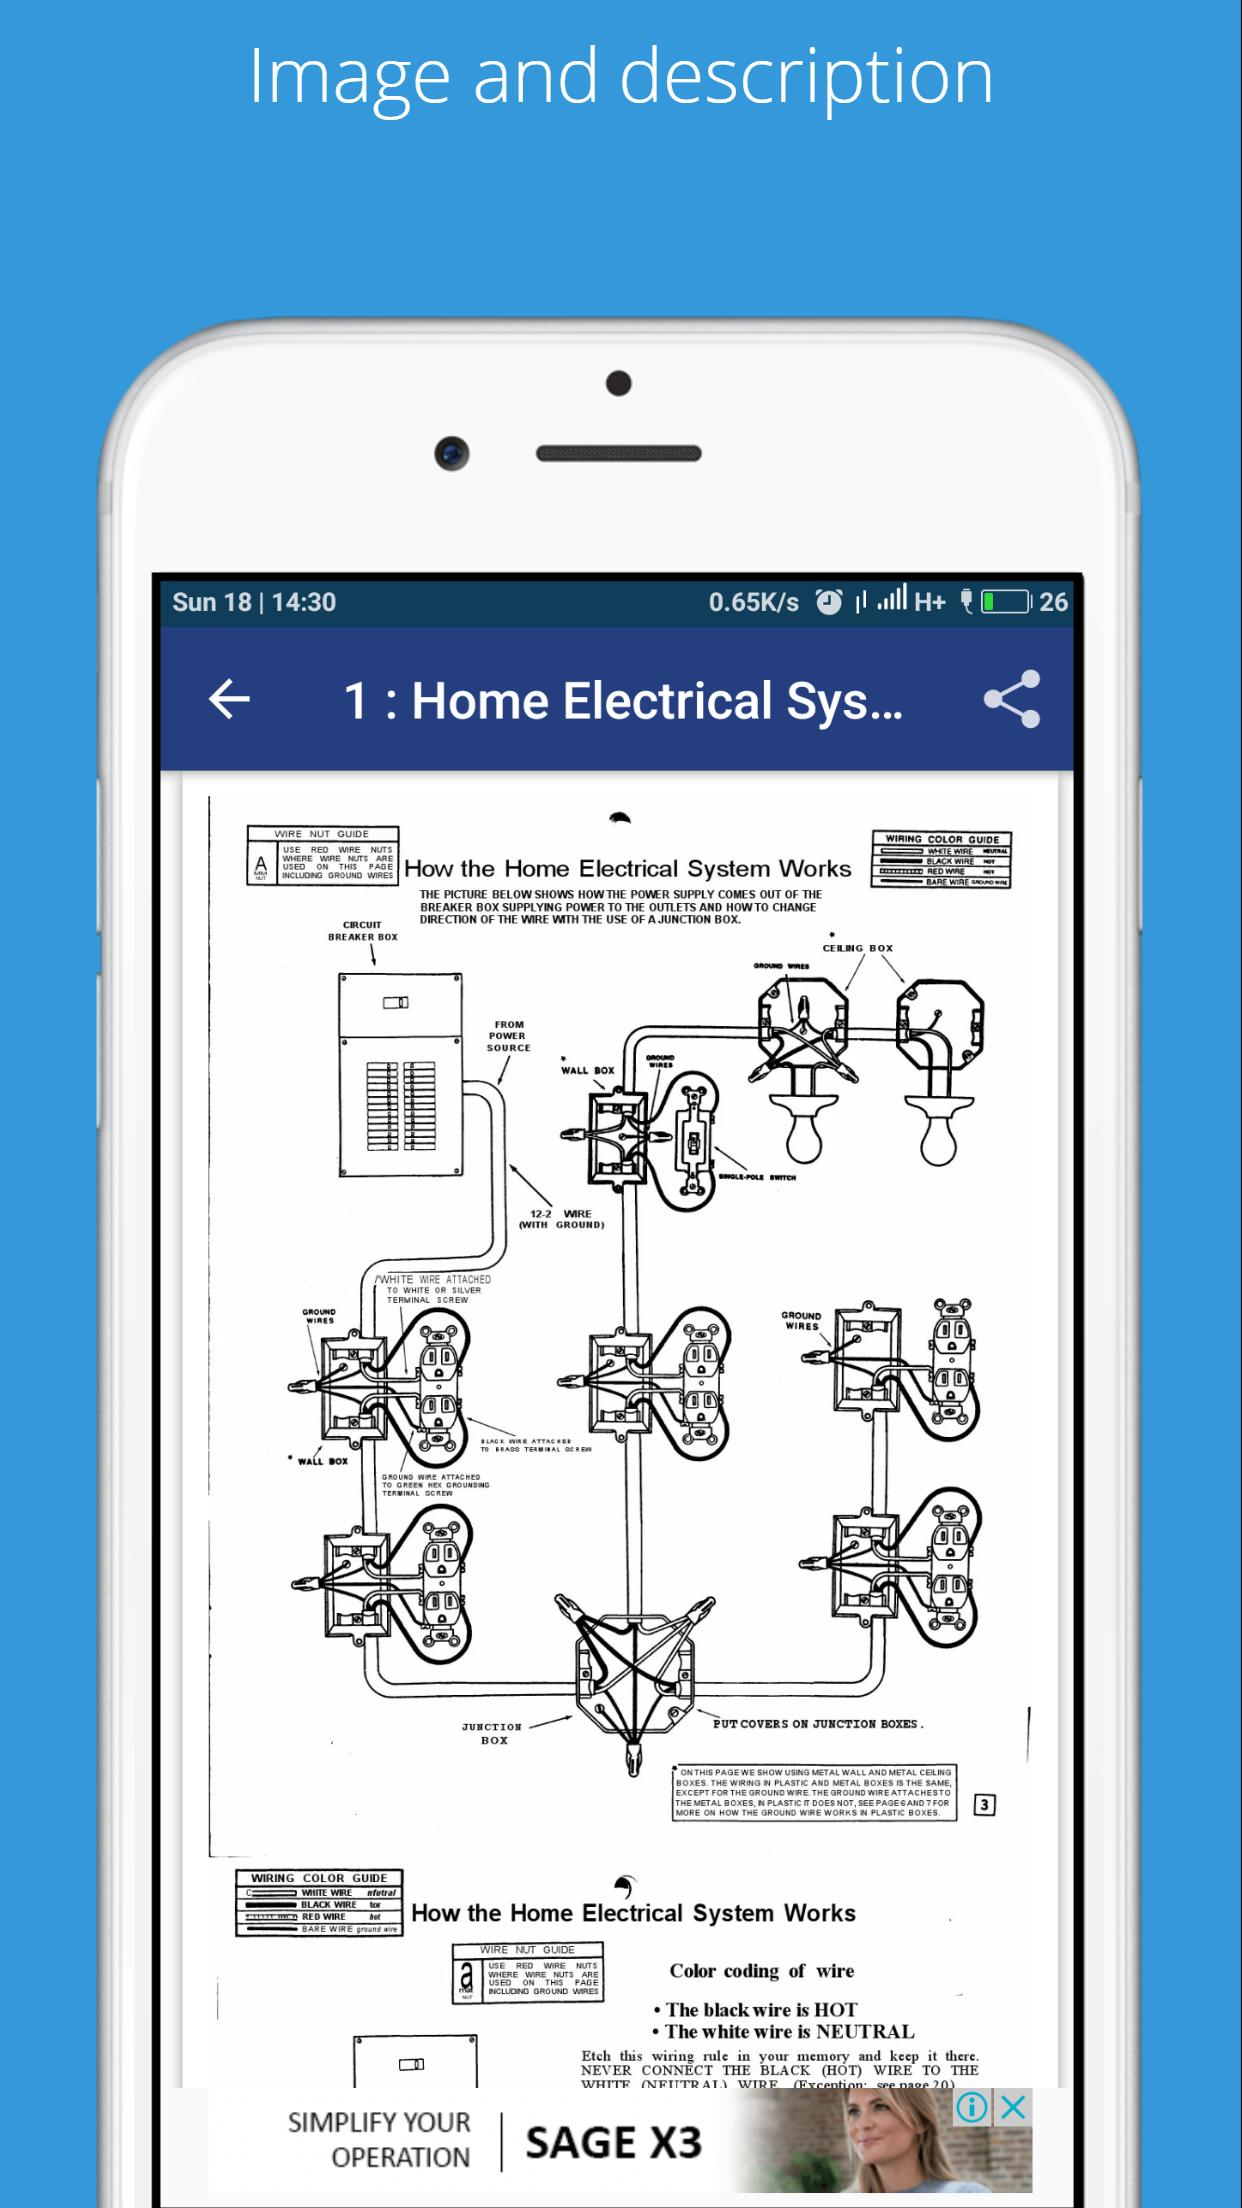 Home Electrical Wiring Diagram Apps for Android - APK Download on